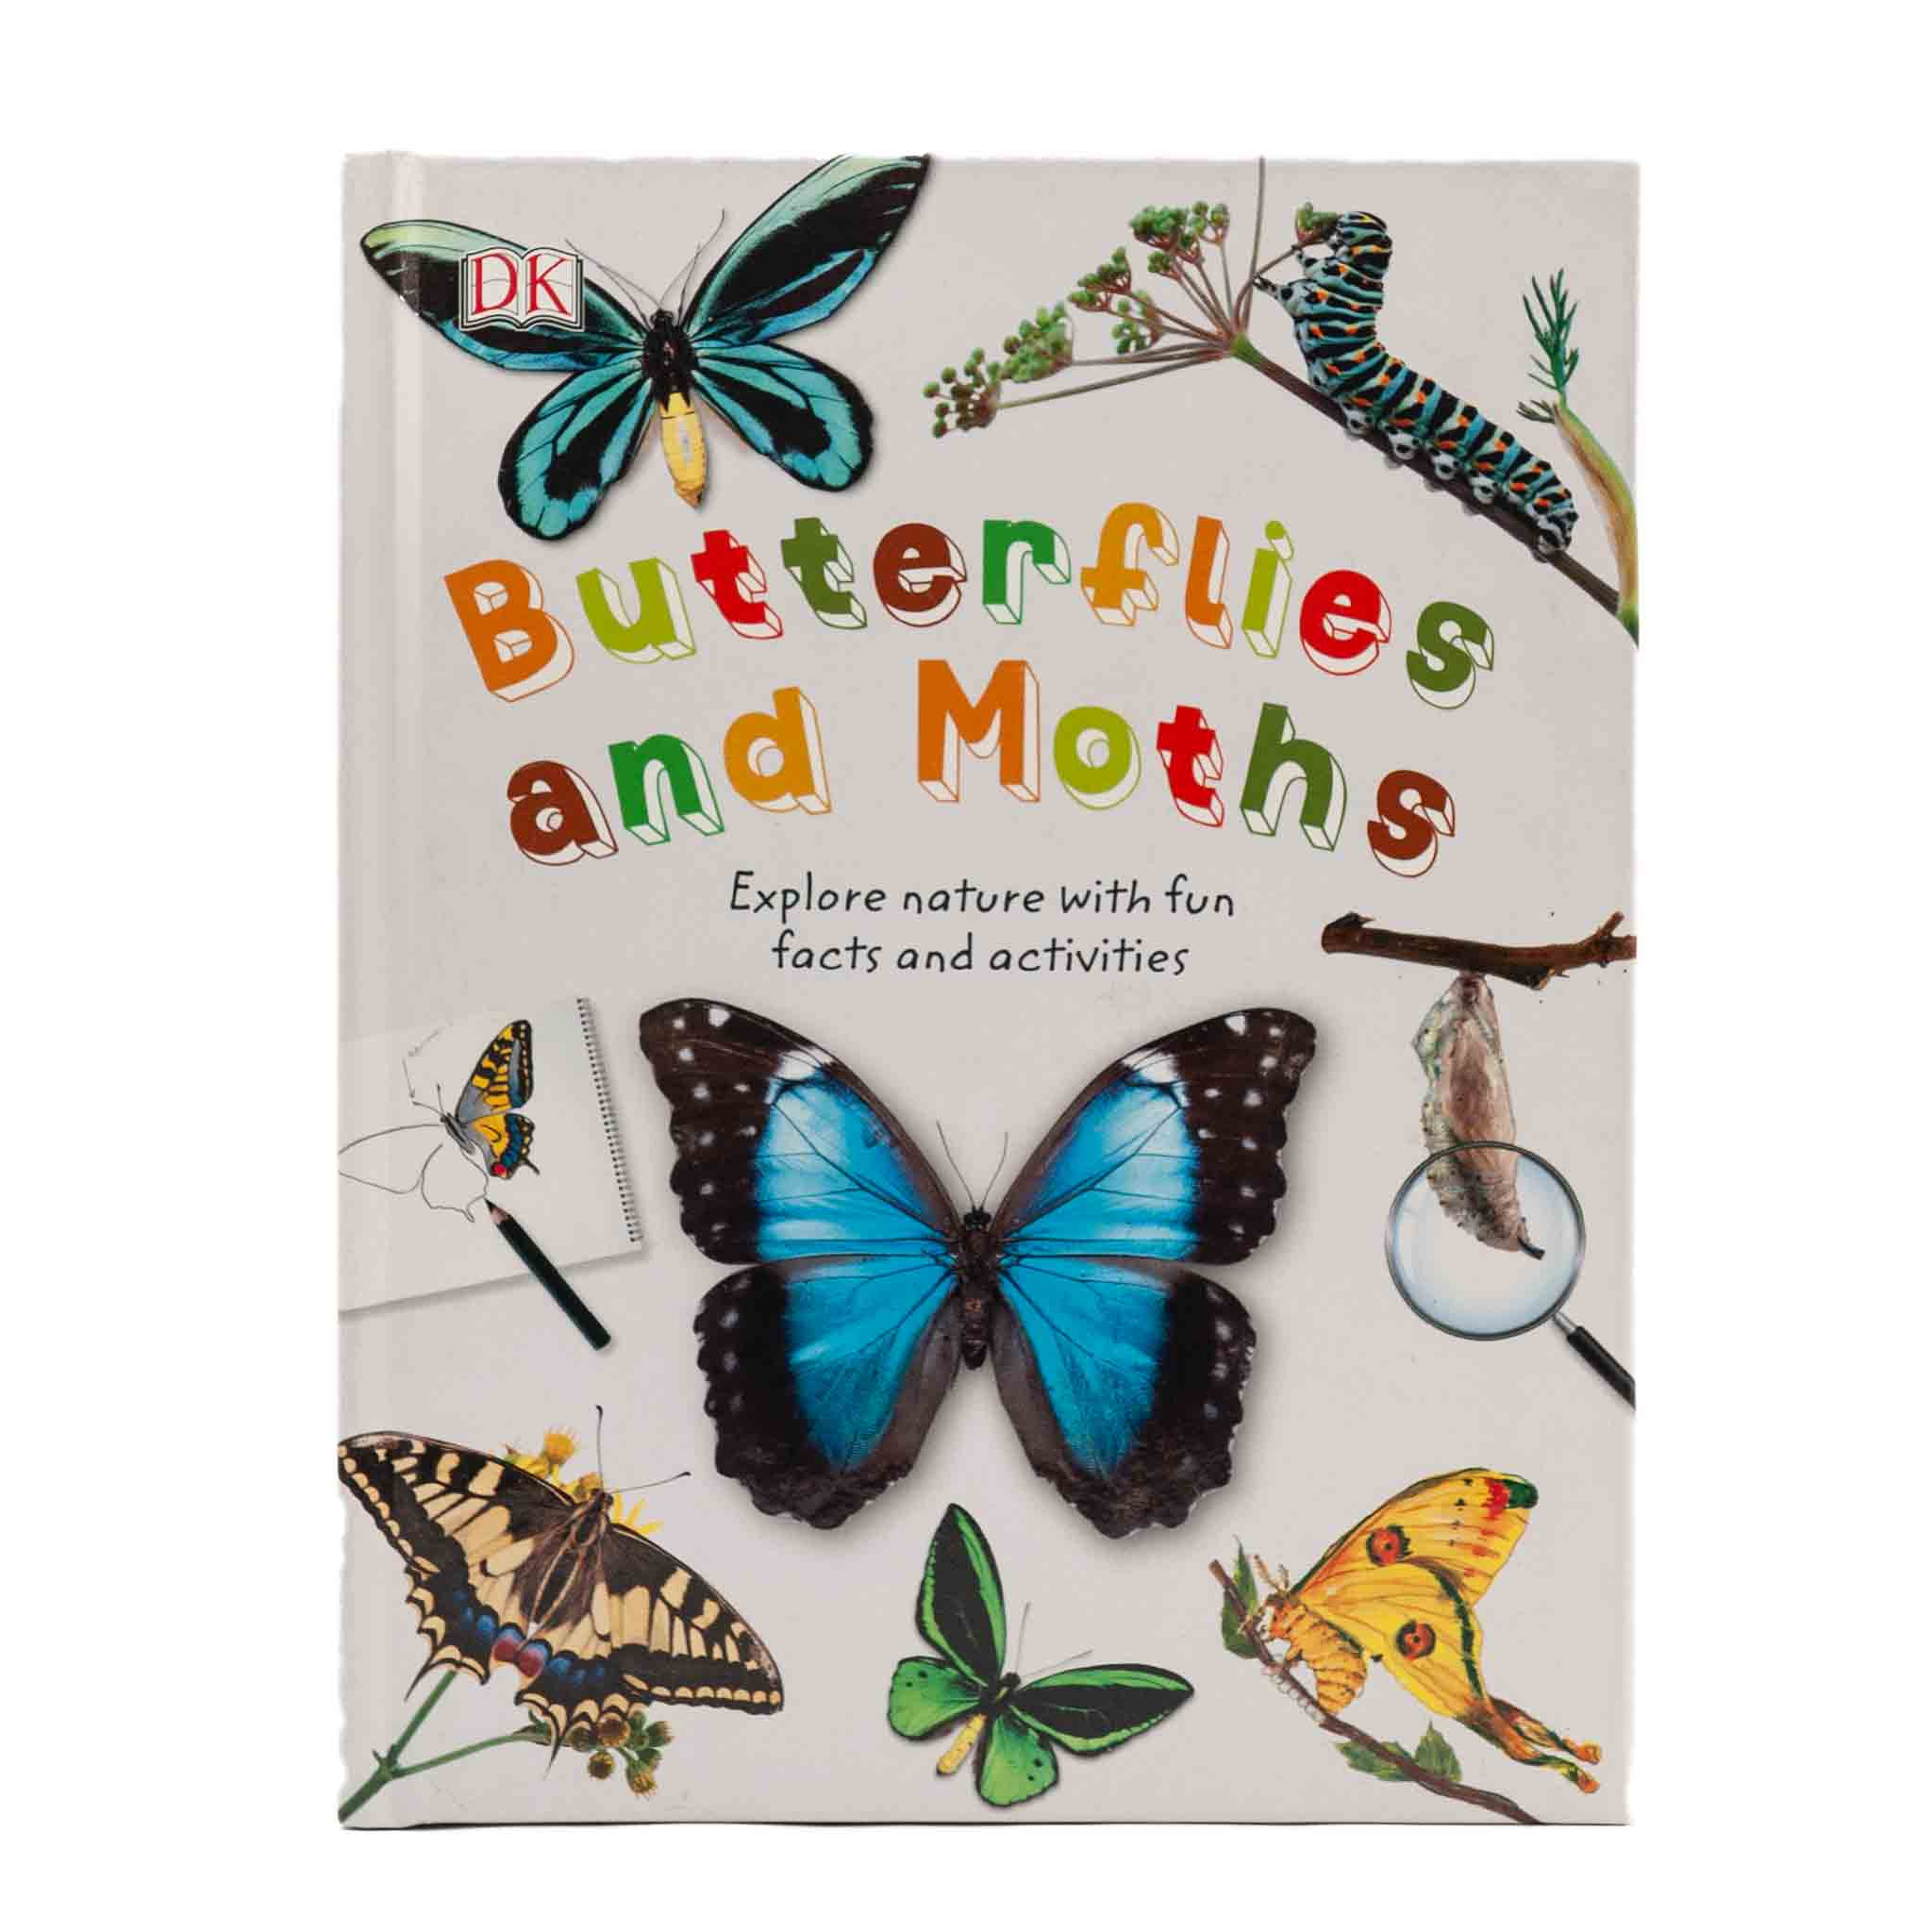 moth and butterfly themed book